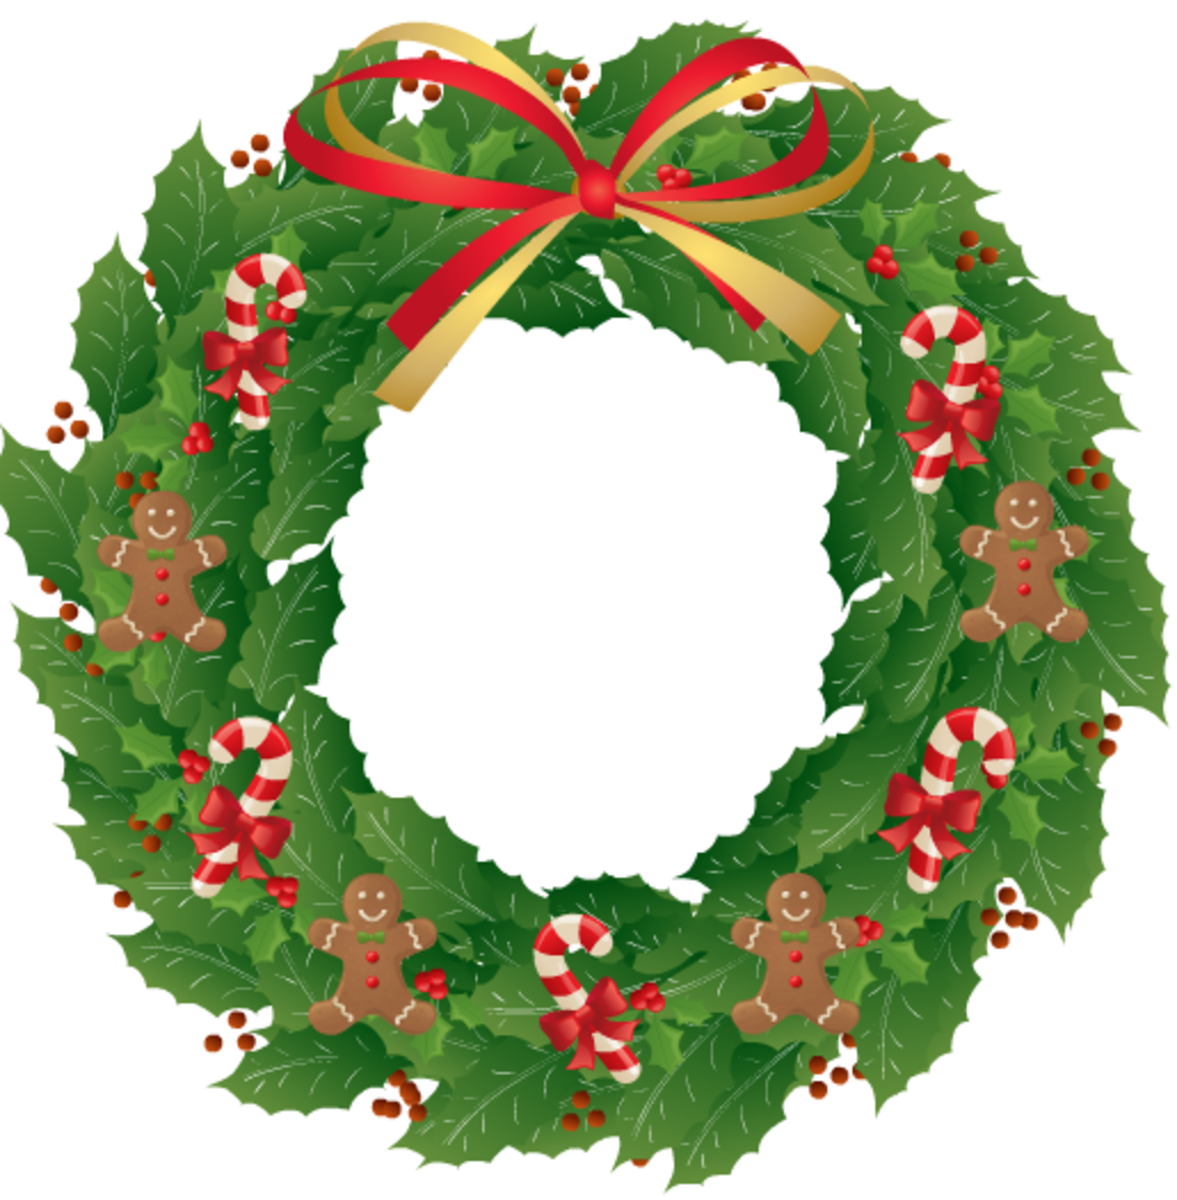 Sweet treats holly wreath.